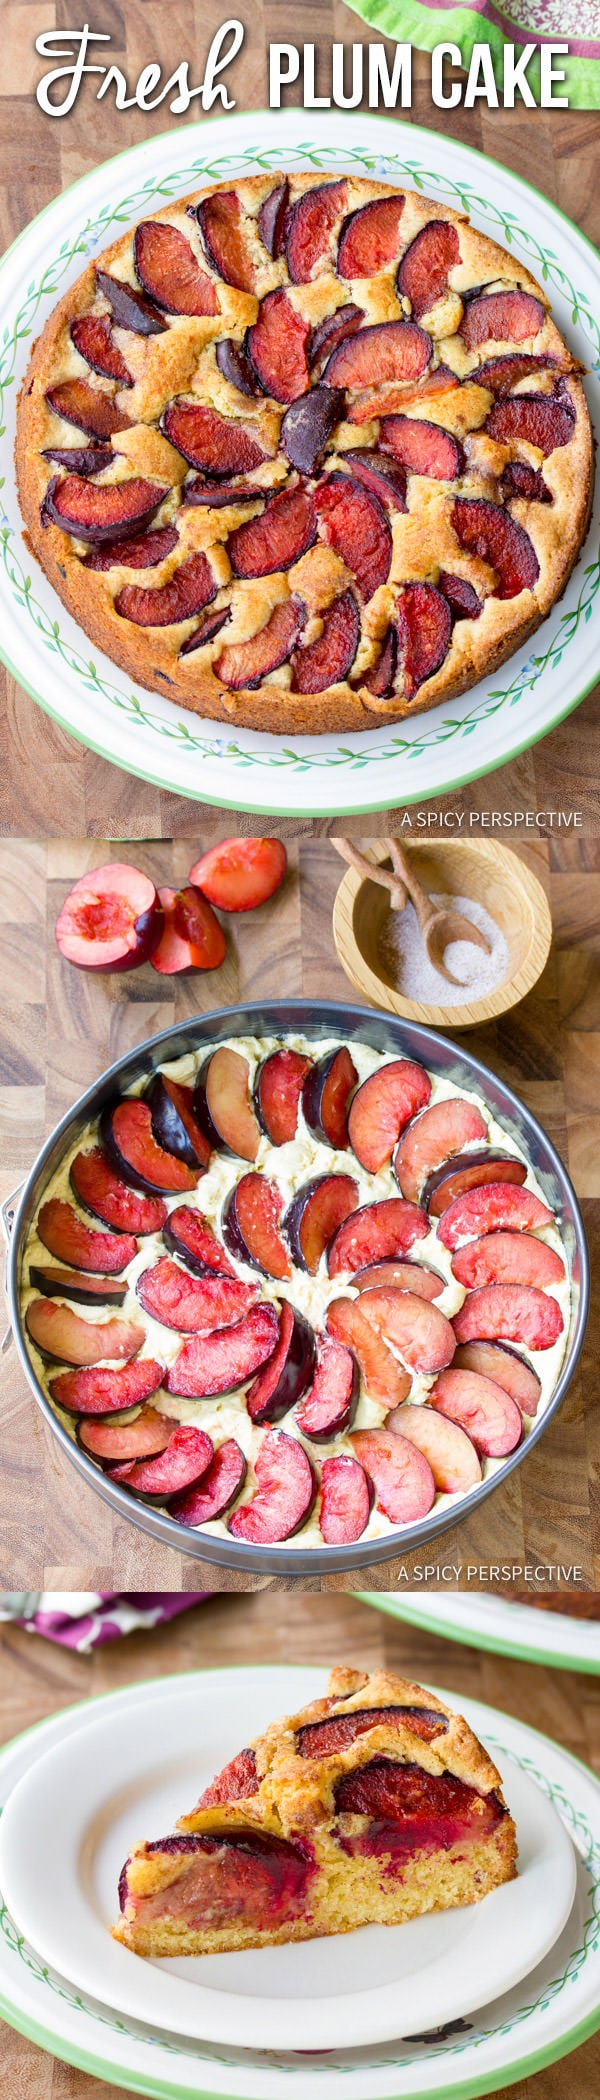 Rustic Fresh Plum Cake Recipe | ASpicyPerspective.com